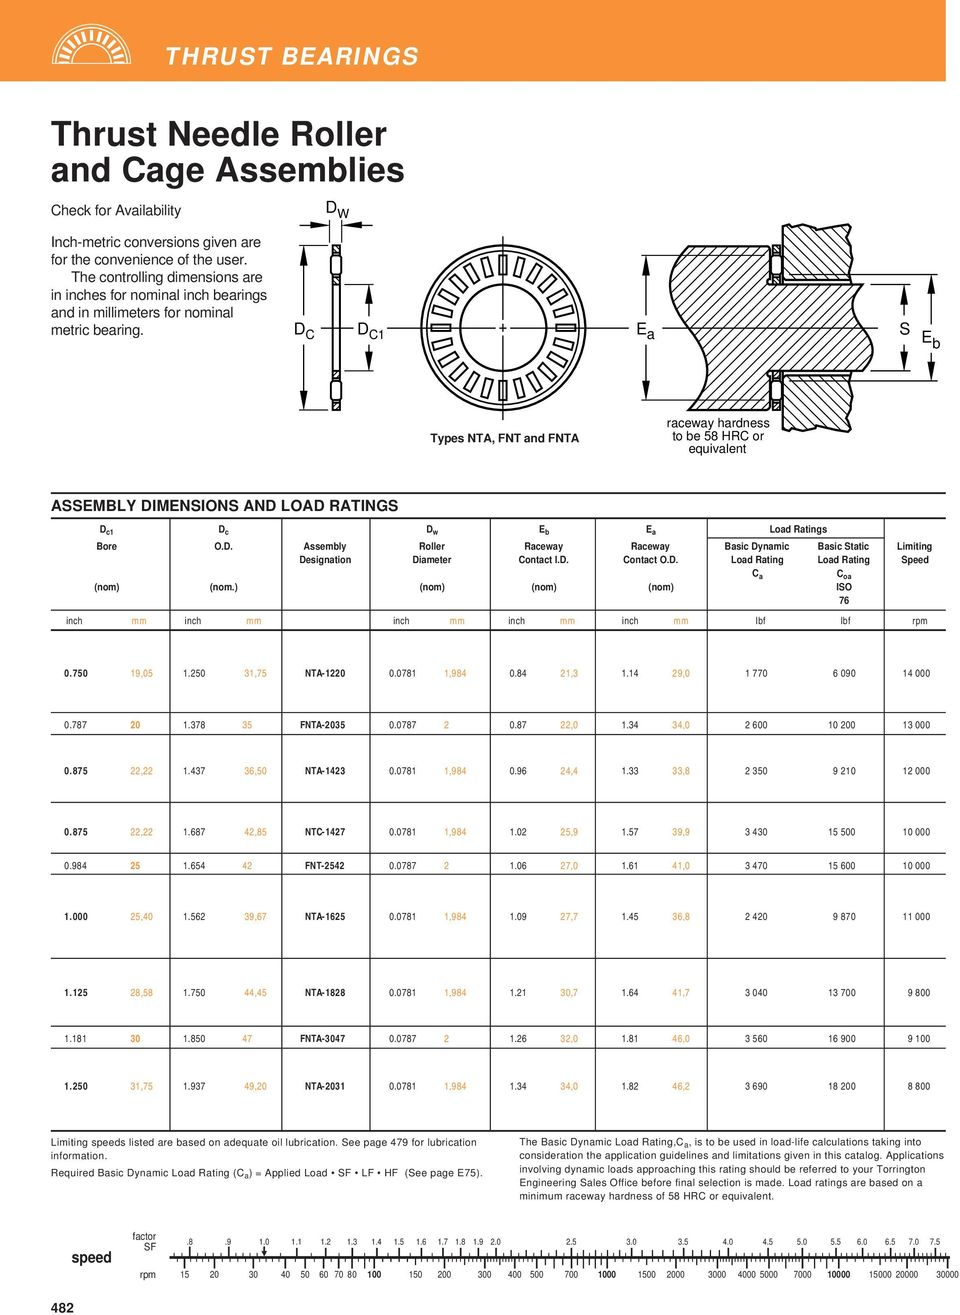 D C D C1 E a S Eb Types NTA, FNT and FNTA raceway hardness to be 58 HRC or equivalent ASSEMBLY DIMENSIONS AND LOAD RATINGS D c1 D c D w E b E a Load Ratings Bore O.D. Assembly Roller Raceway Raceway Basic Dynamic Basic Static Limiting Designation Diameter Contact I.